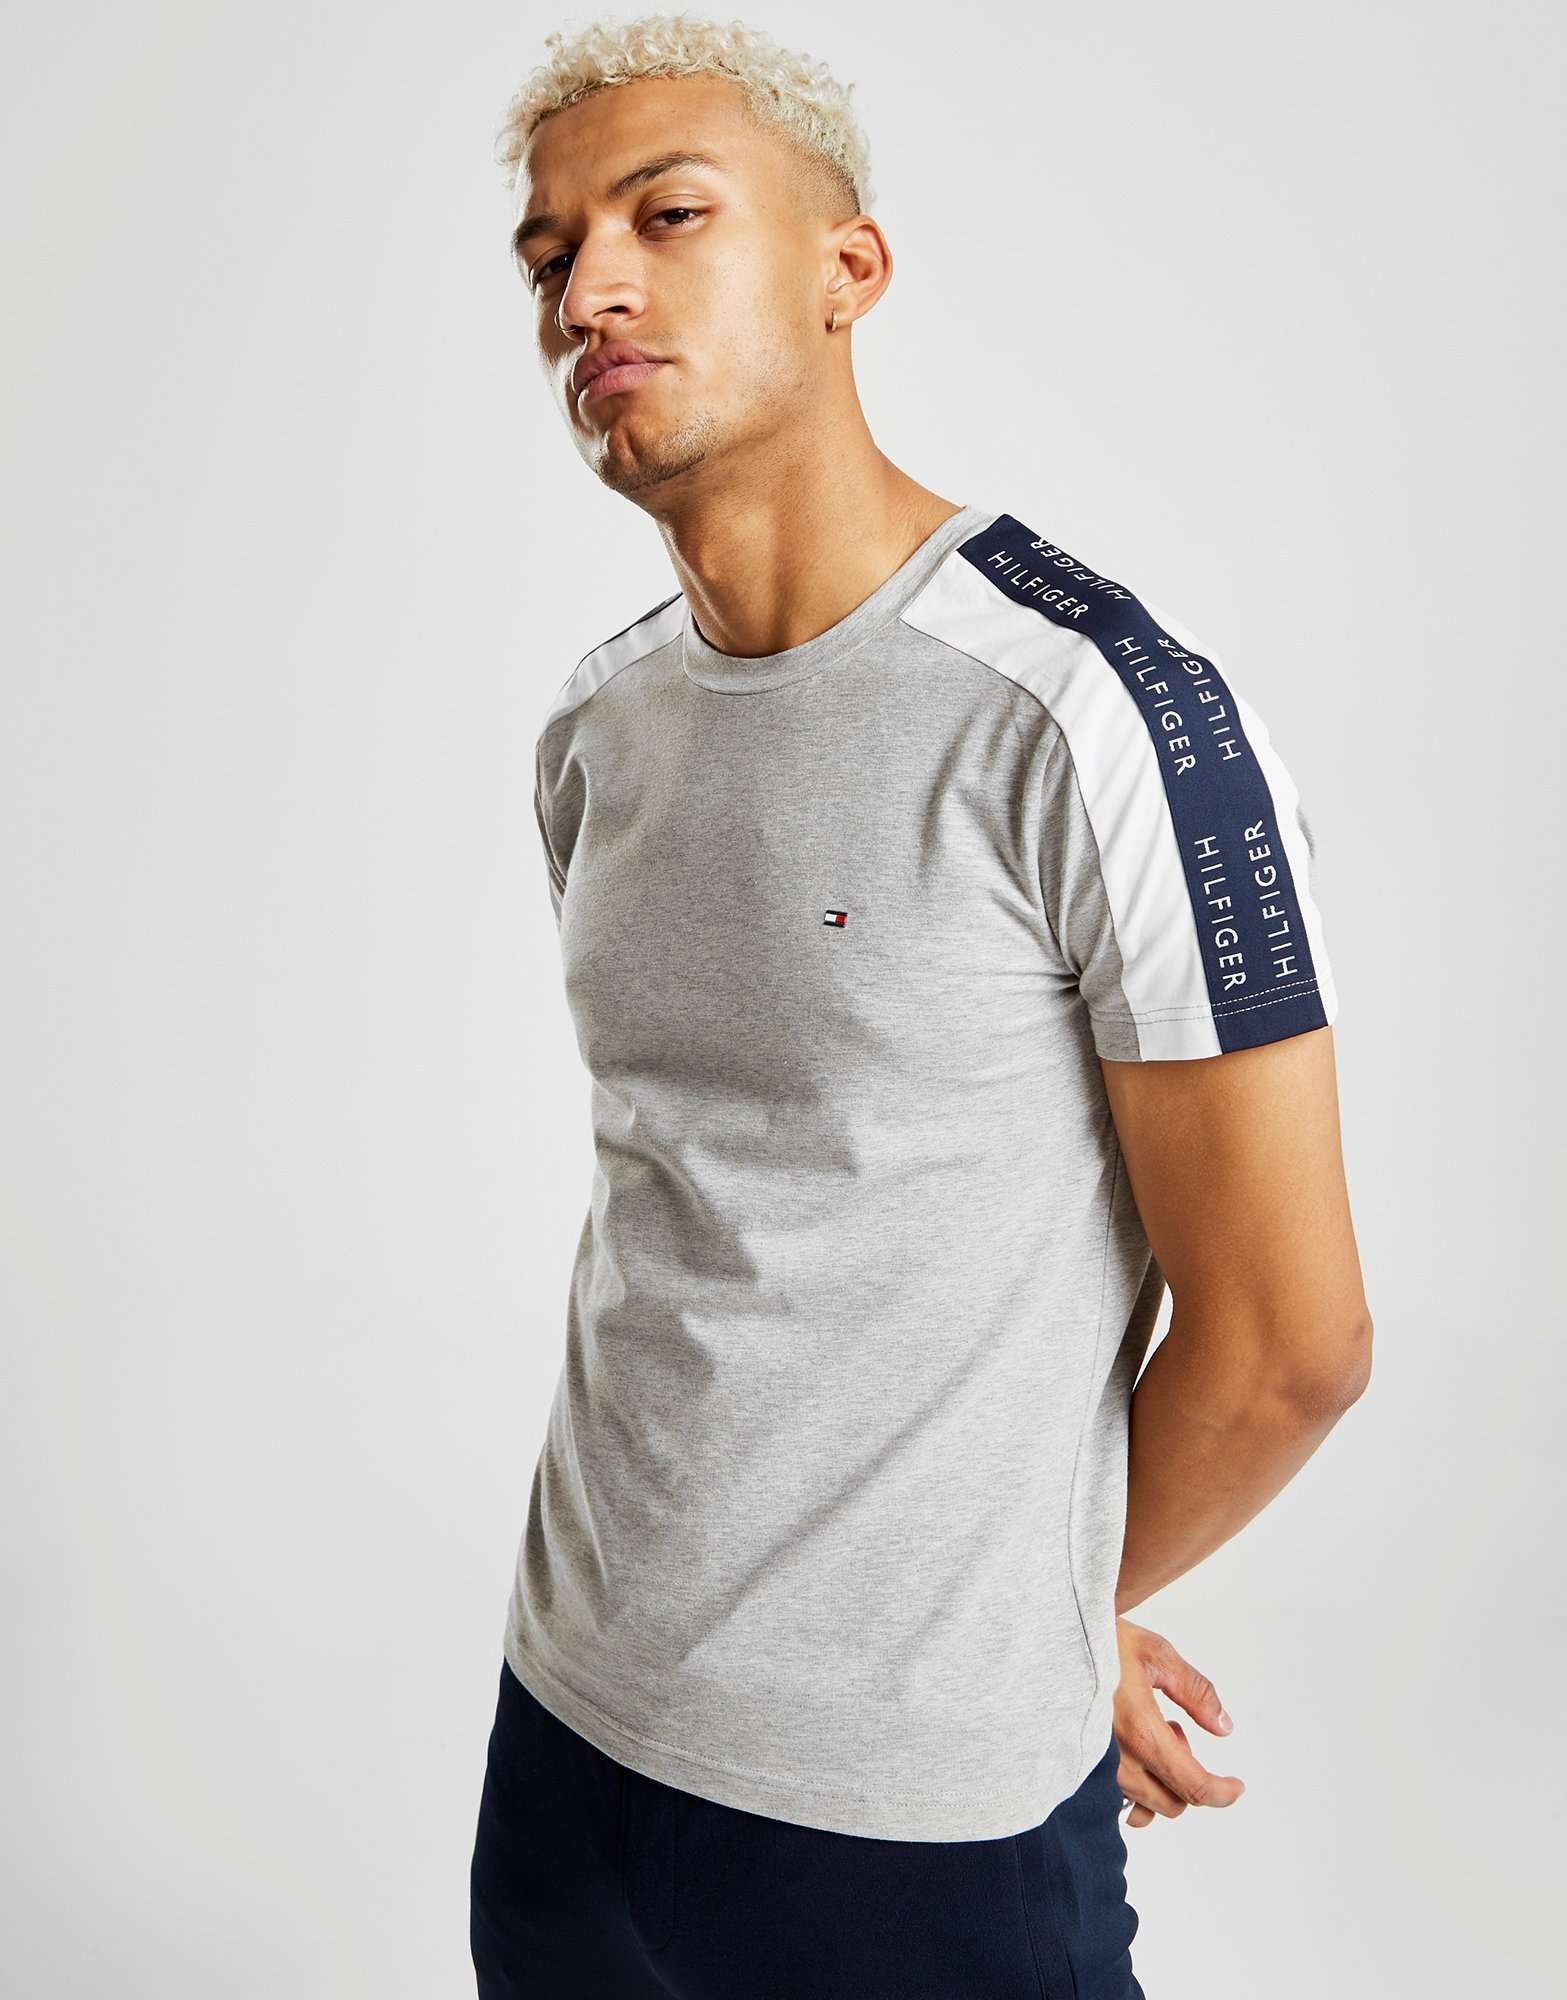 c1e23857a Tommy Hilfiger Contrast Tape Short Sleeve T-Shirt - Shop online for Tommy  Hilfiger Contrast Tape Short Sleeve T-Shirt with JD Sports, the UK's  leading ...